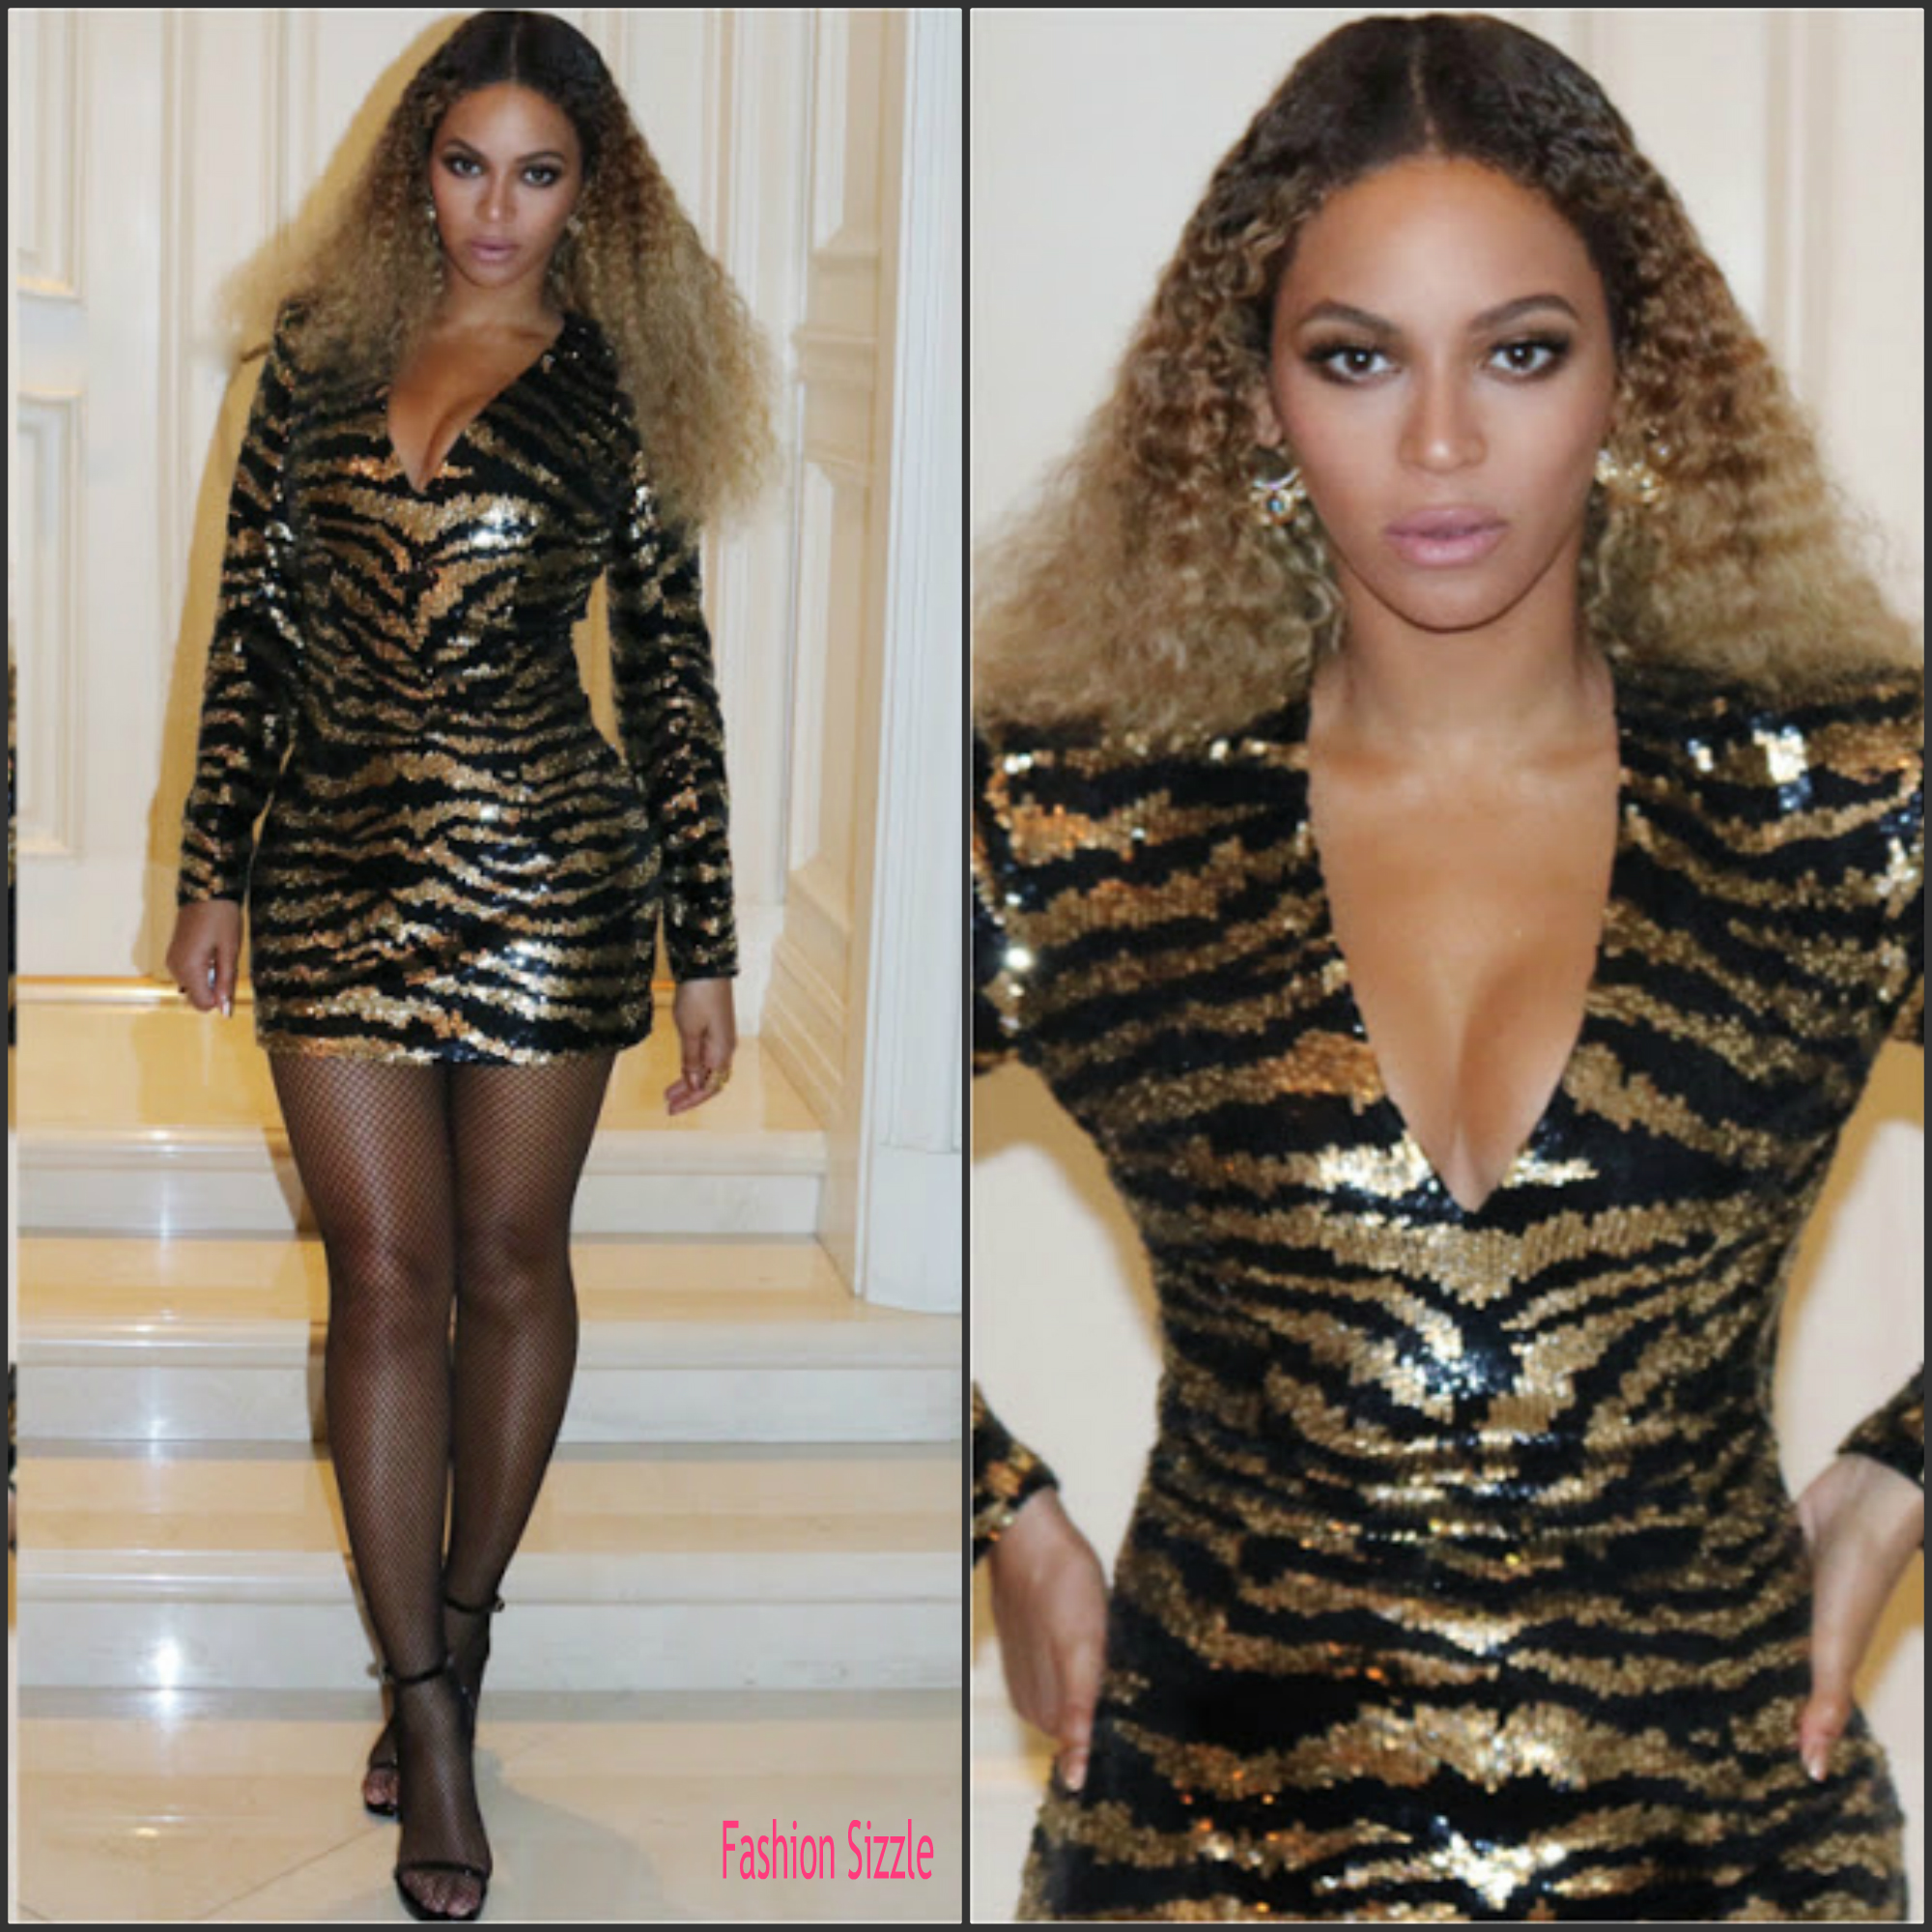 beyonce-in-balmain-center-for-early-education-performance